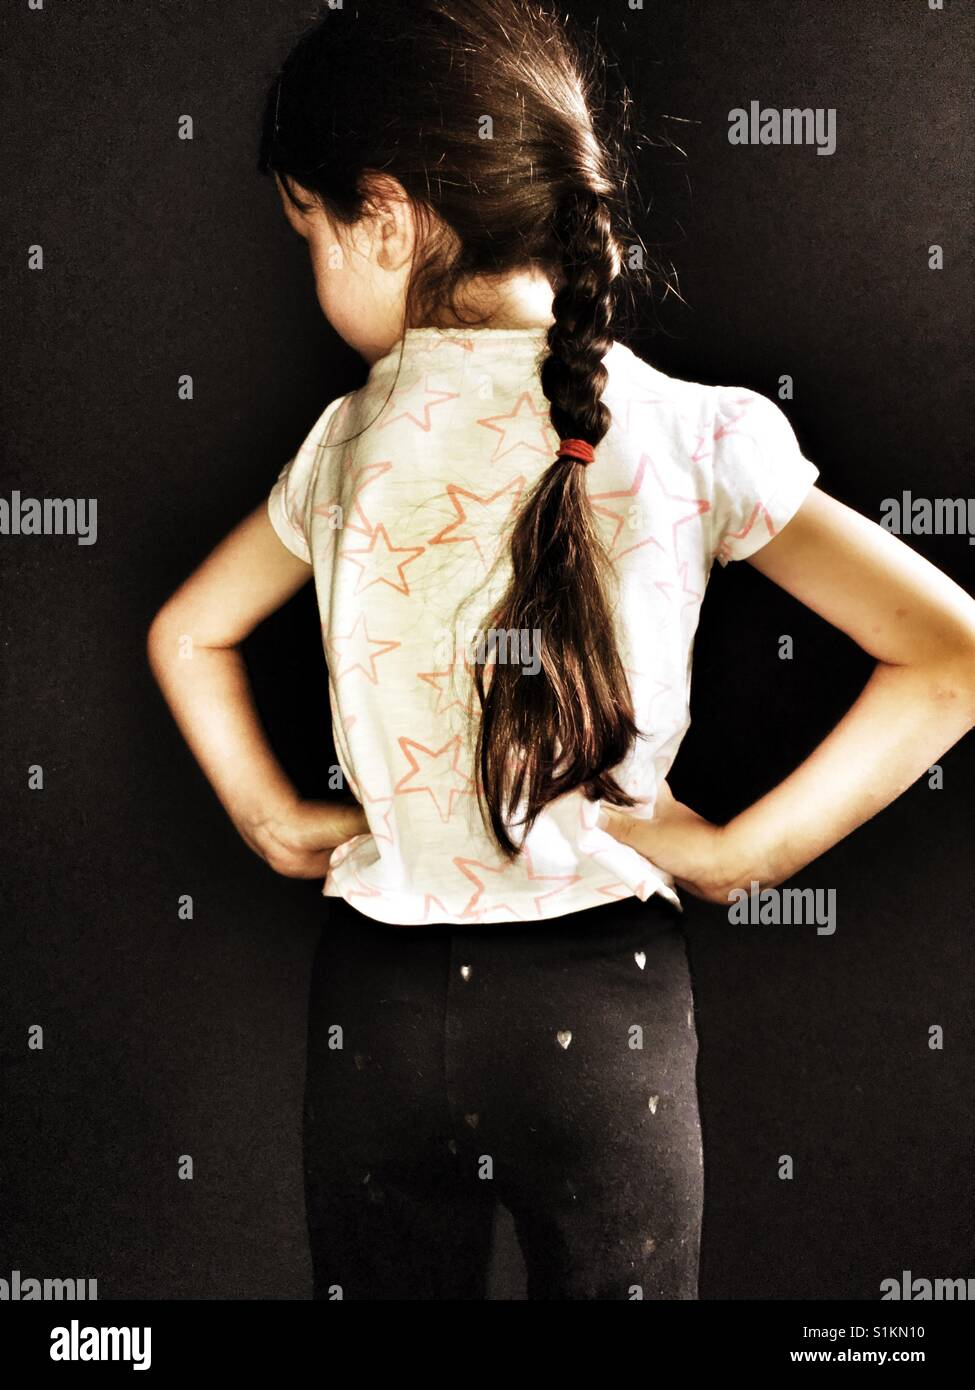 Girl with ponytail - Stock Image